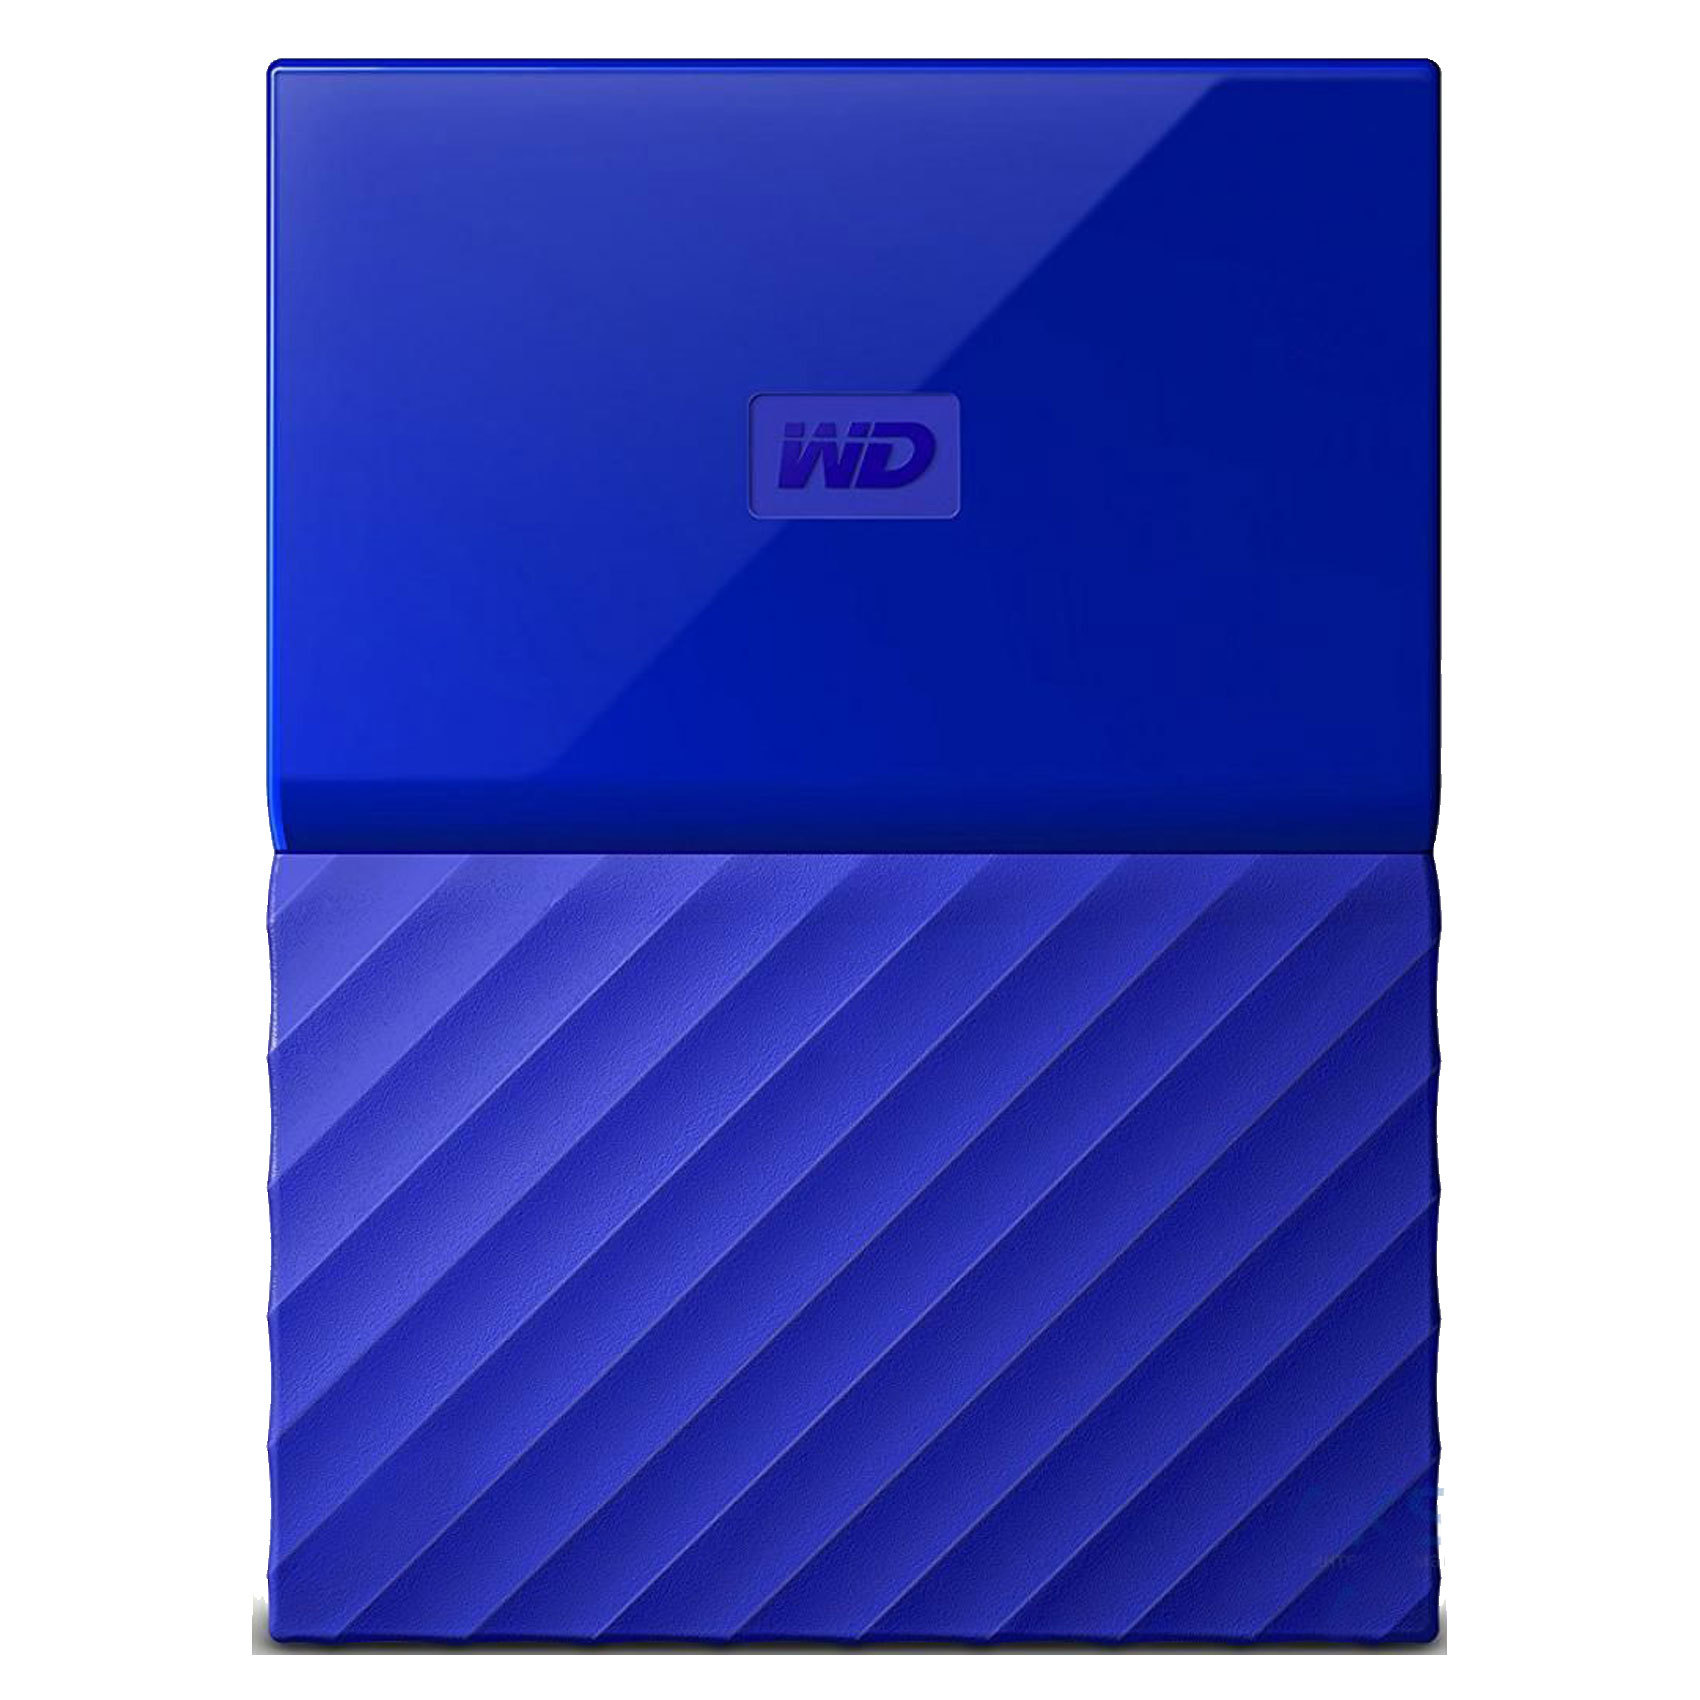 WD HDD 2TB PASSPORT BL WW